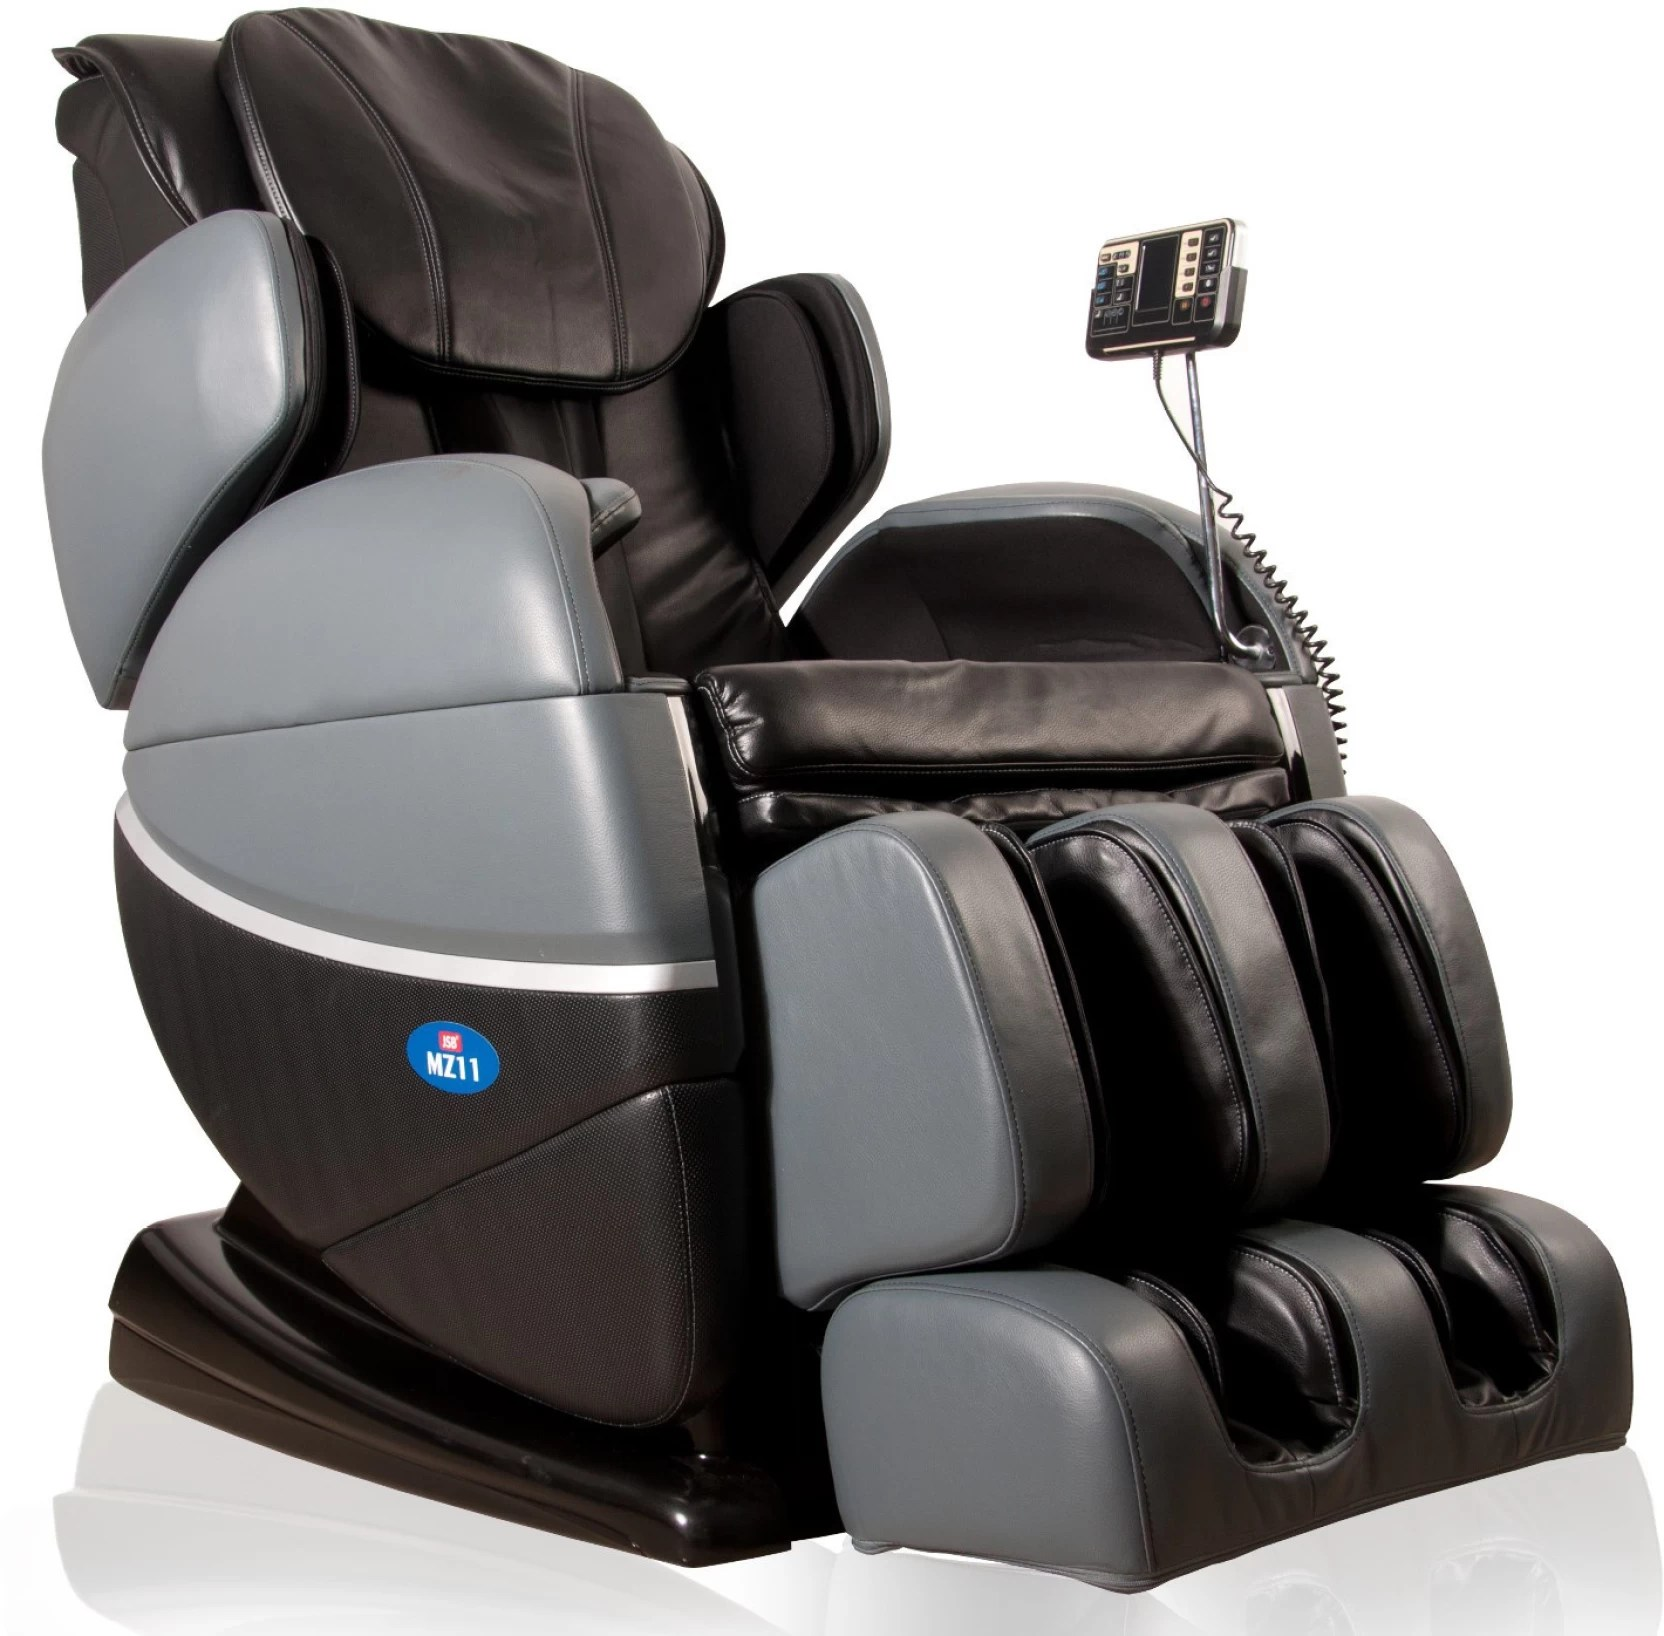 massage chair prices leather wing uk jsb mz11 full body recliner massager price